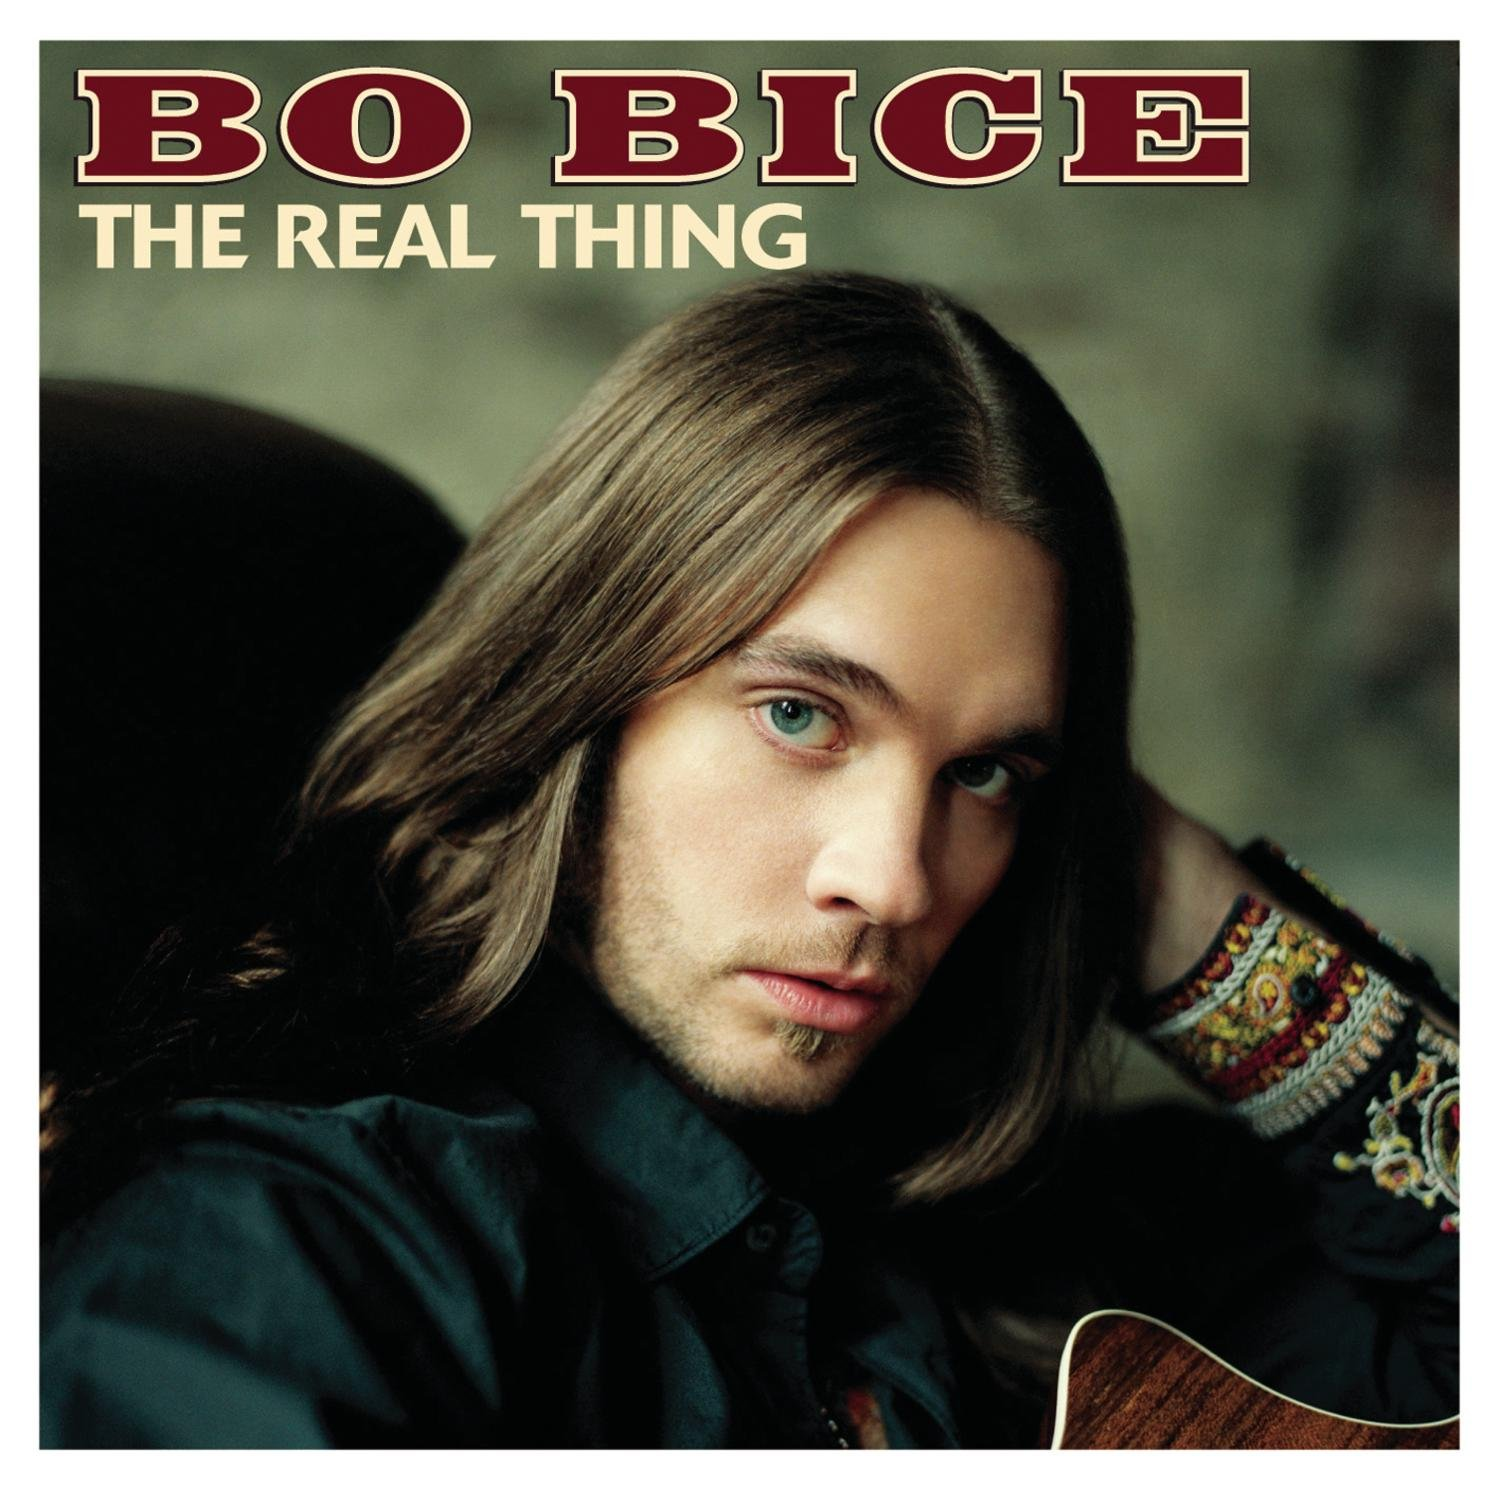 Bo Bice, The Real Thing